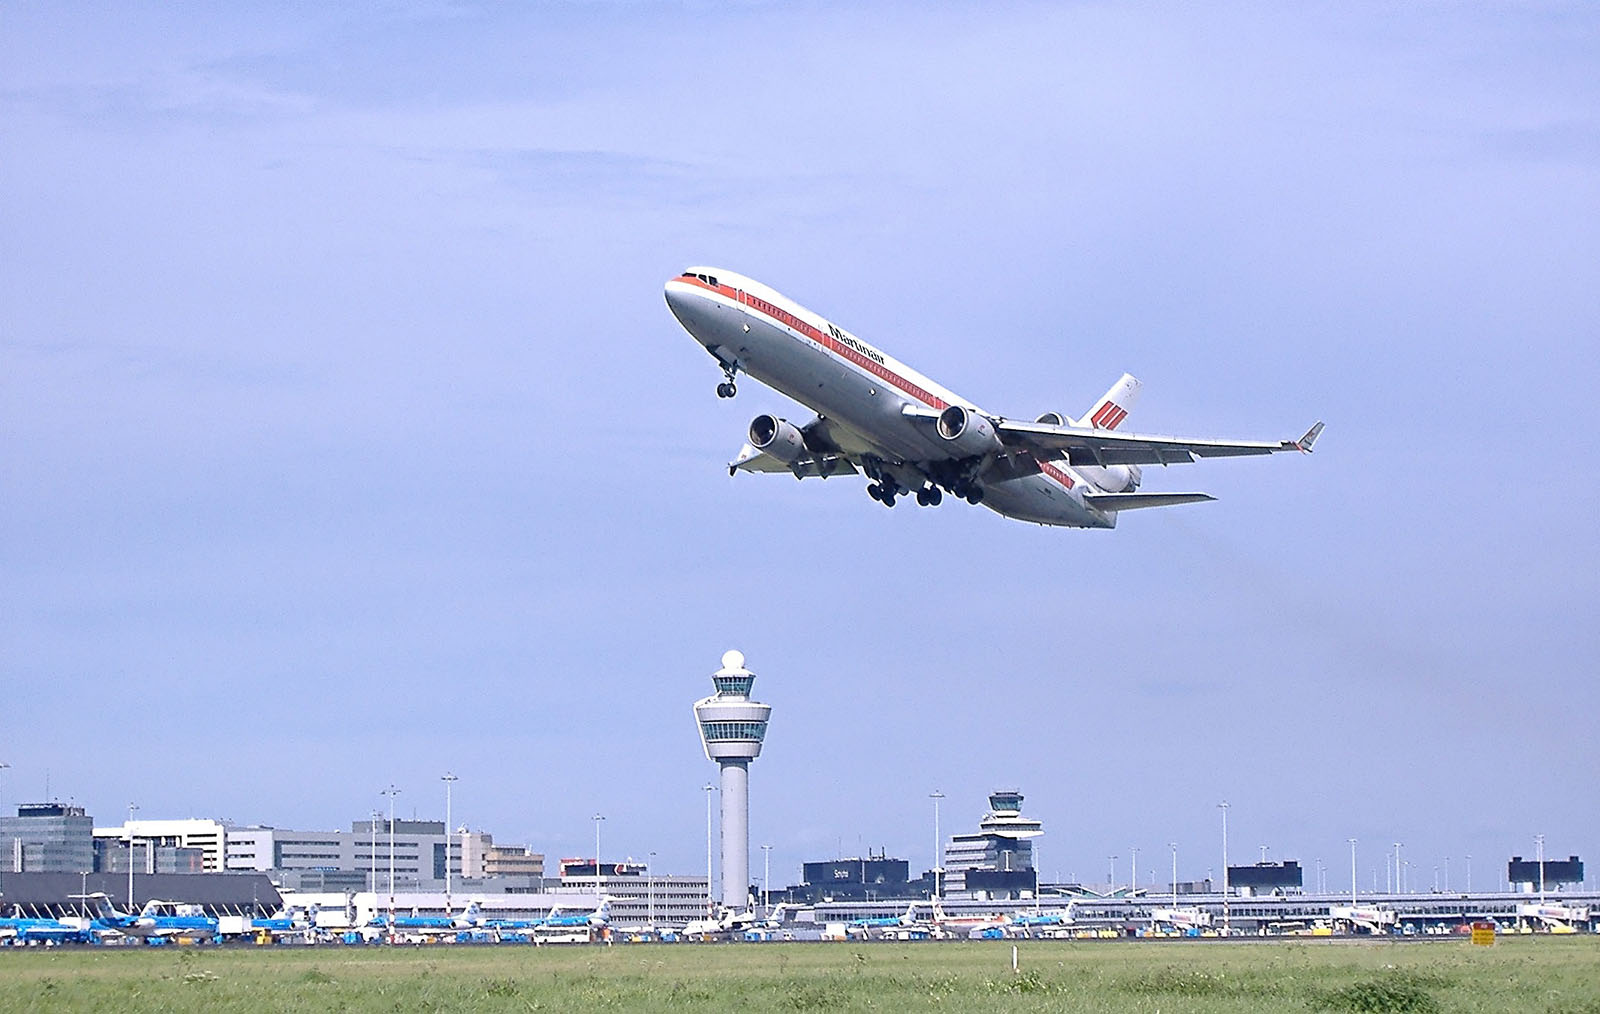 An aeroplane taking off from Schiphol airport in Amsterdam.